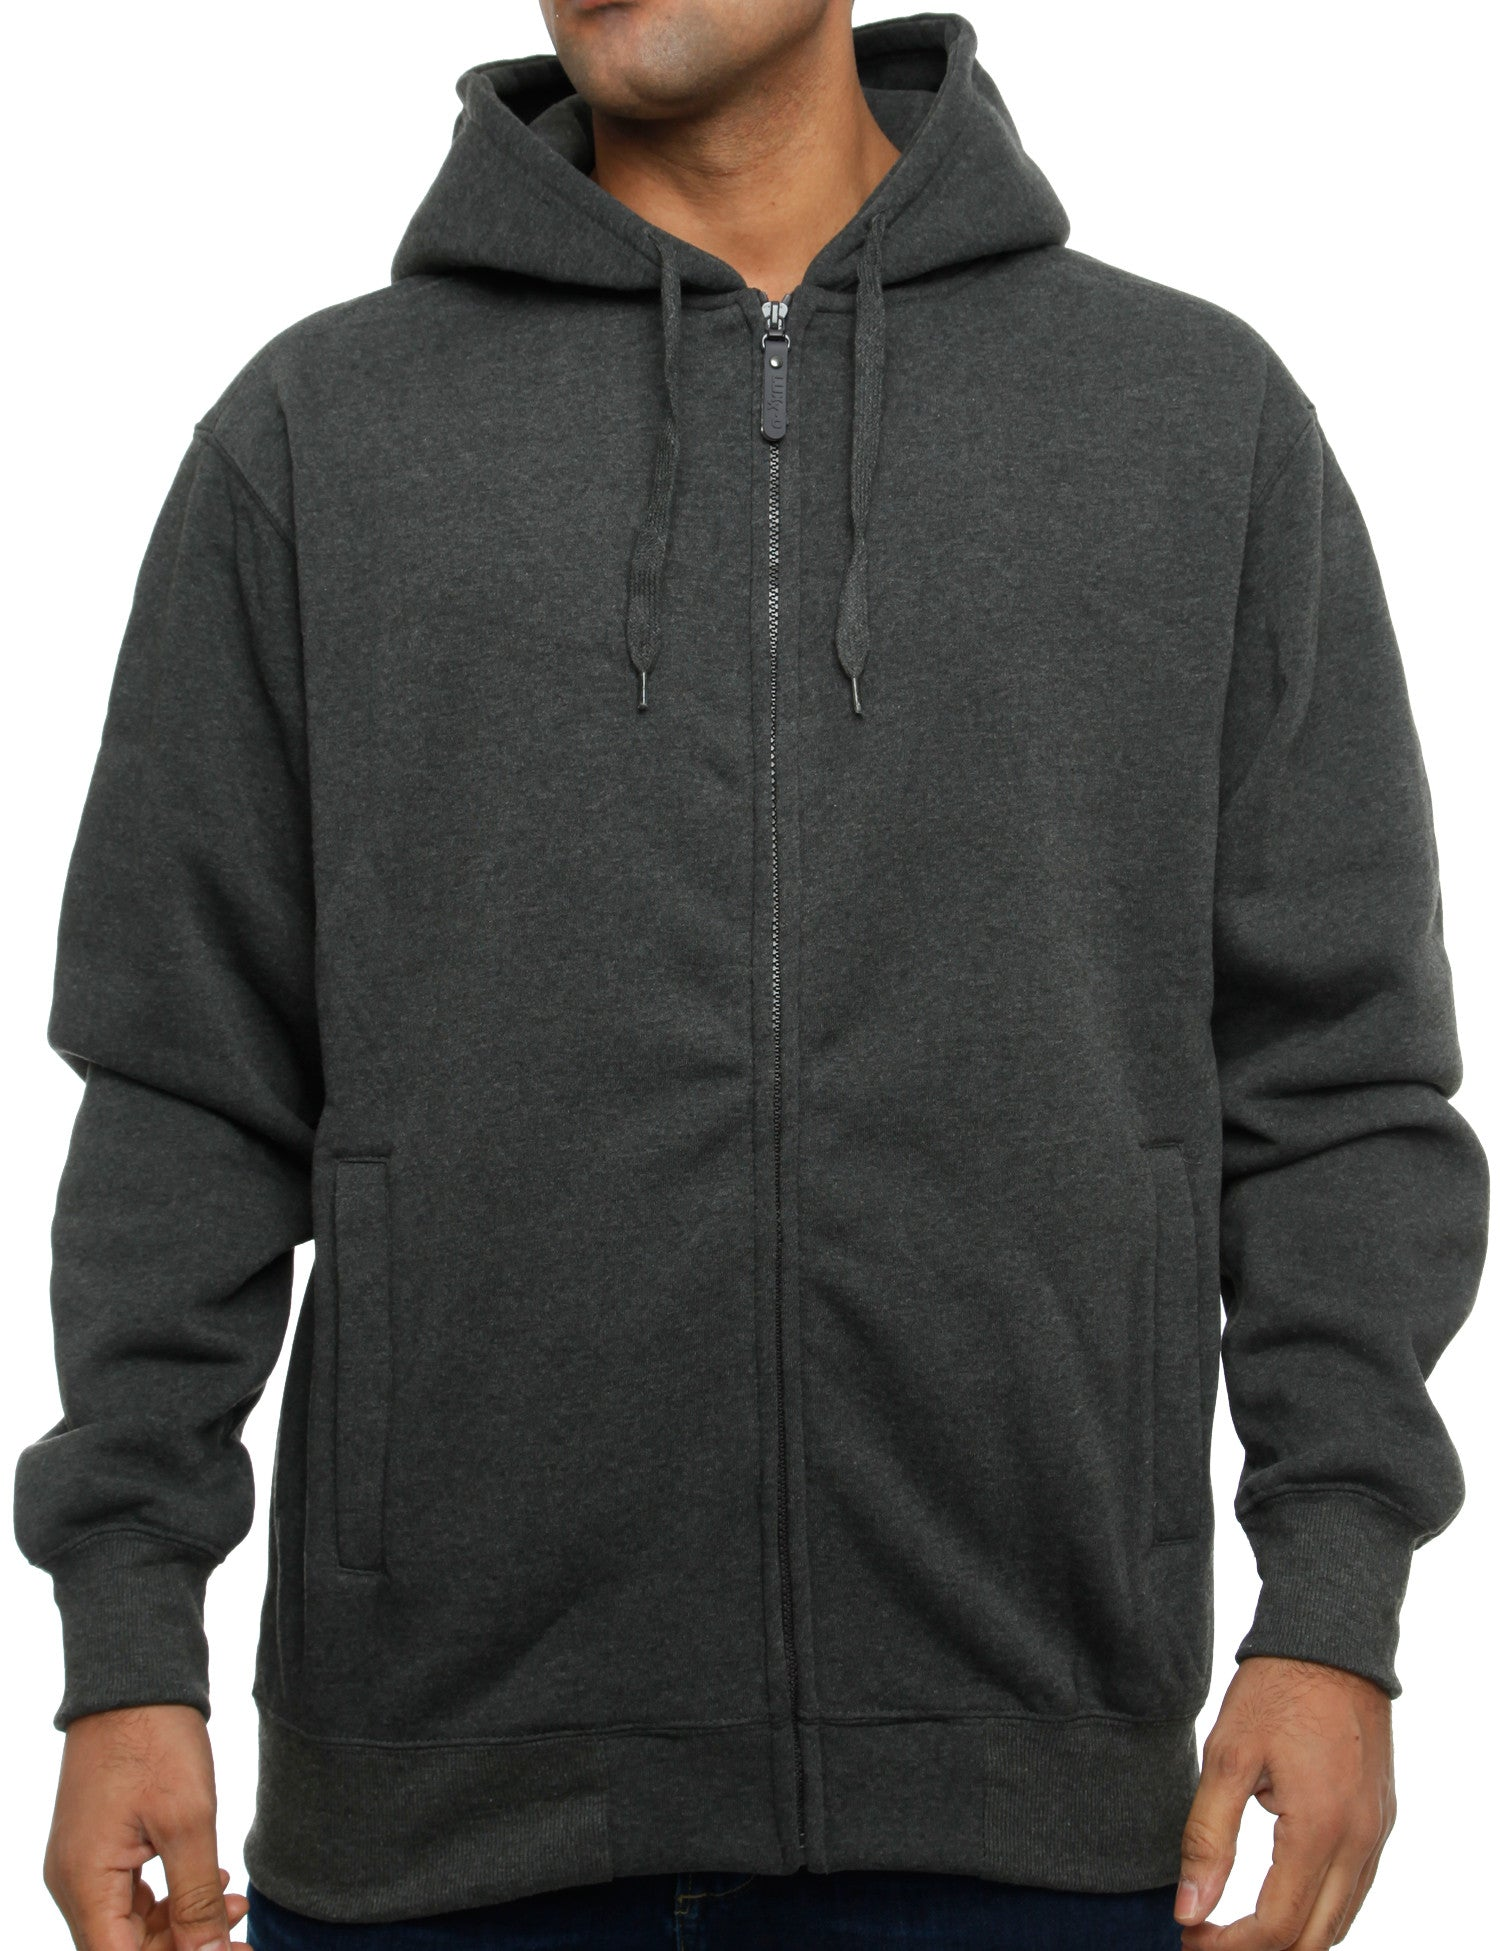 Imperious Fleece Hoody 10221A C. Grey